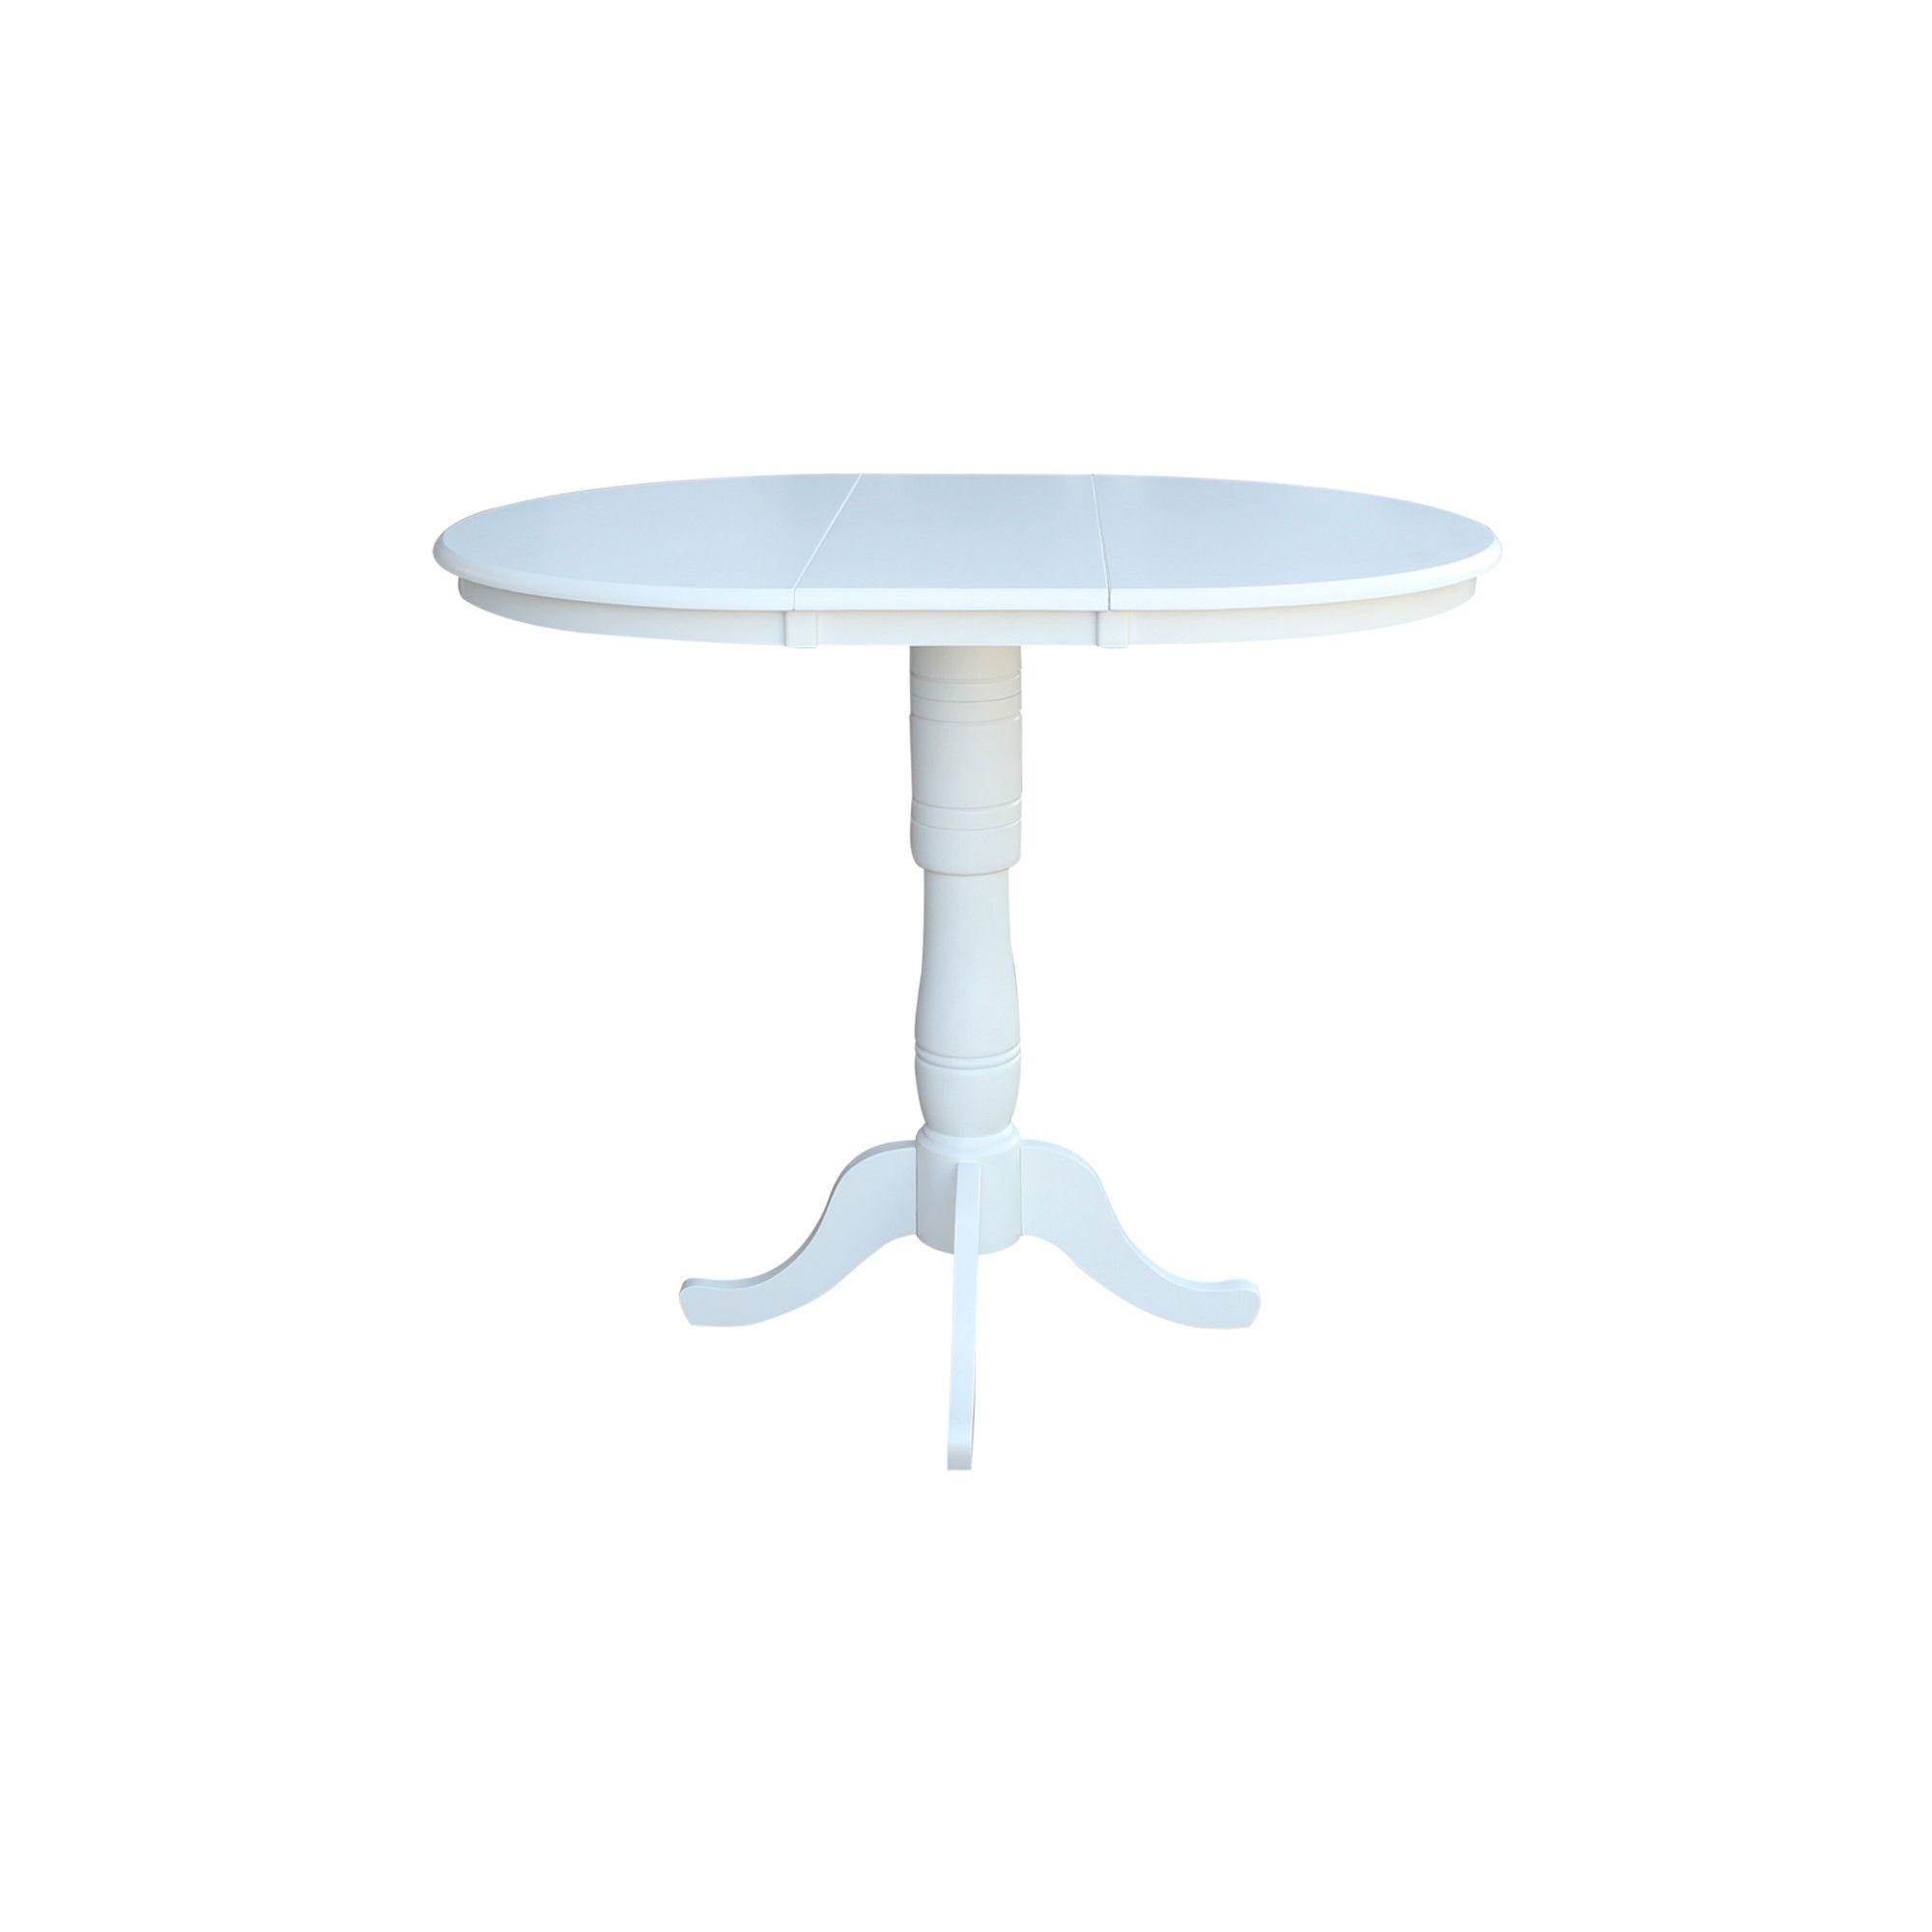 """36"""" Kyle Round Top Pedestal Table With 12"""" Leaf Bar Height Intended For Recent Cleary Oval Dining Pedestal Tables (View 2 of 25)"""